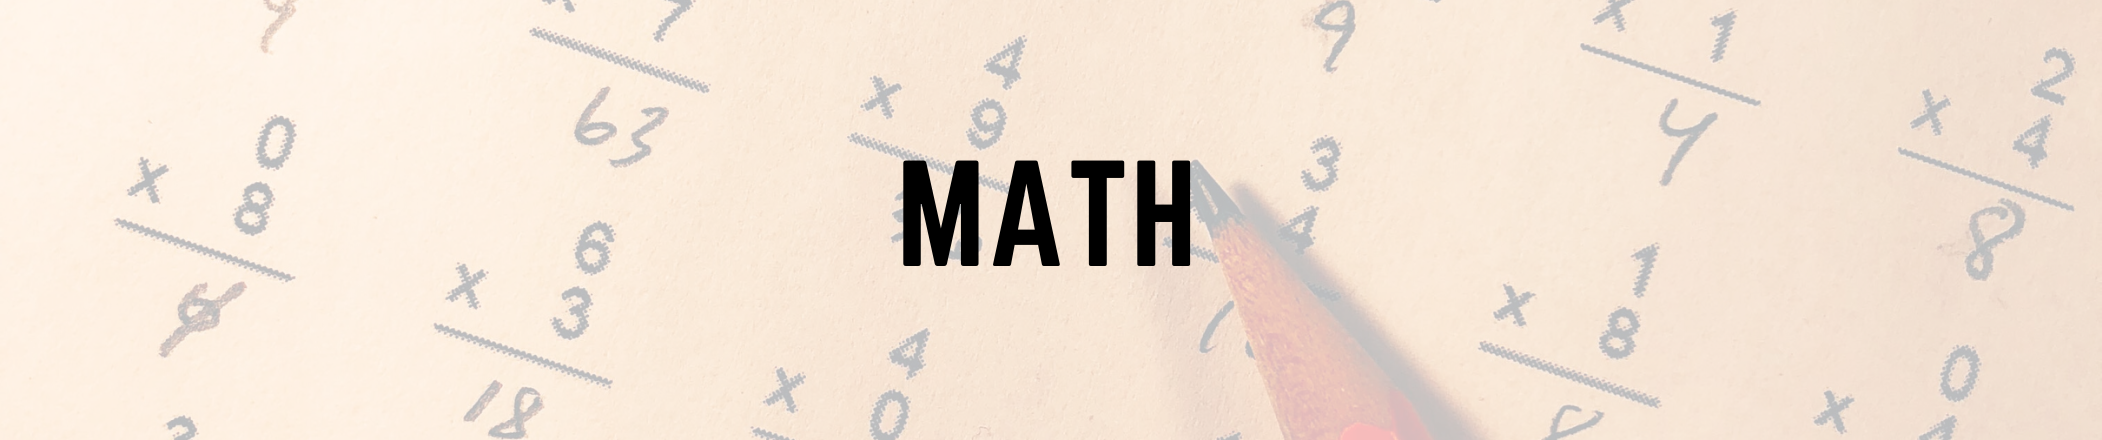 Math text on image background